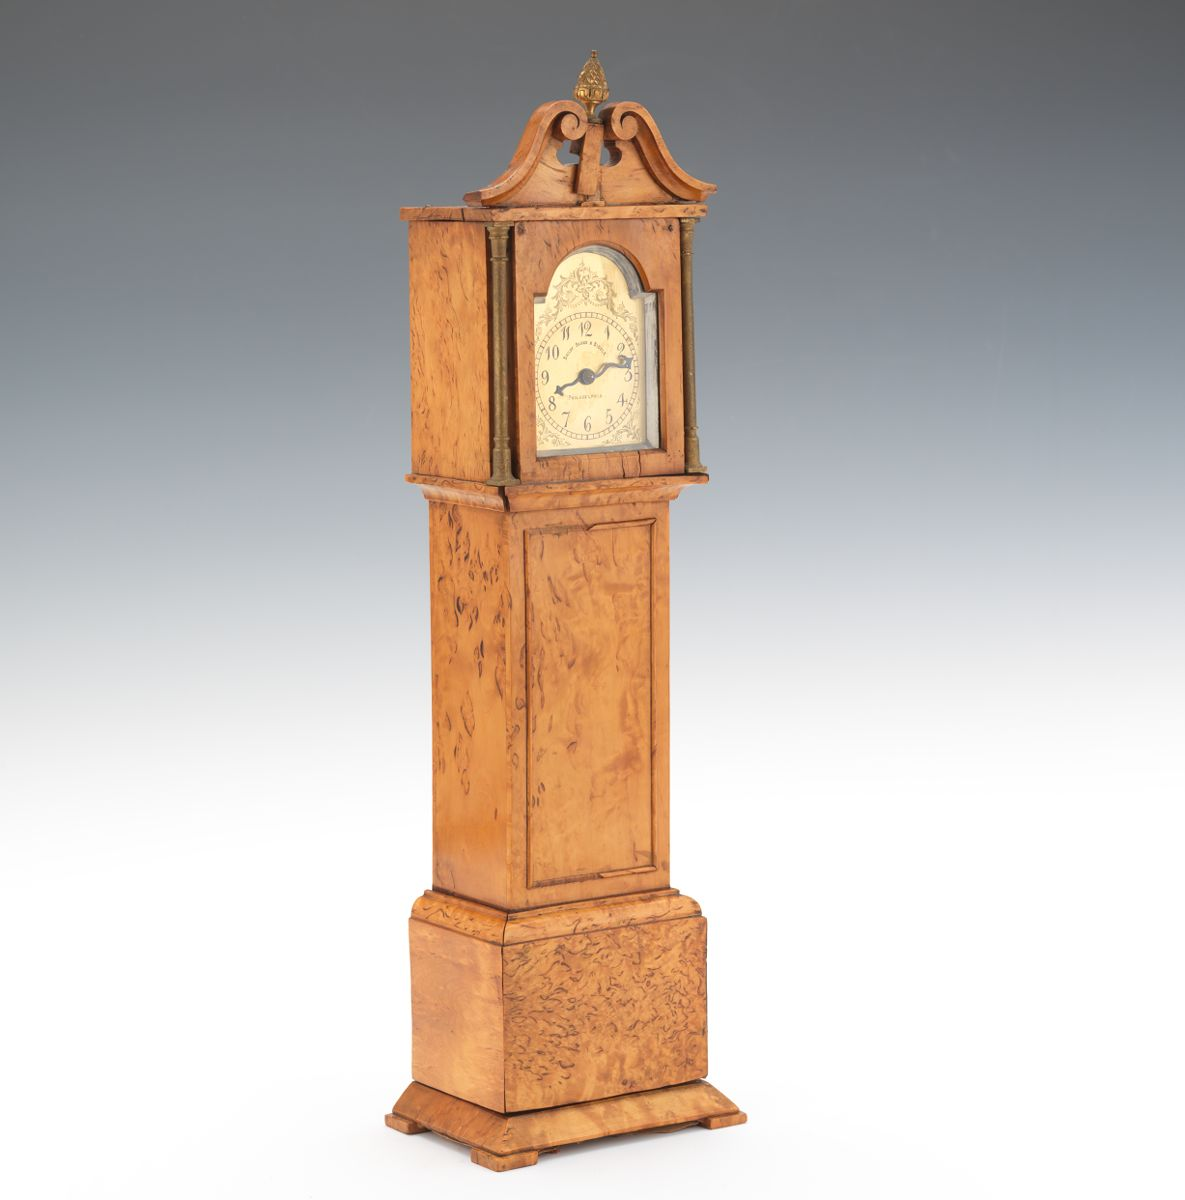 A Miniature Tall Clock Bailey Banks Biddle Philadelphia 09 04 14 Sold 316 25